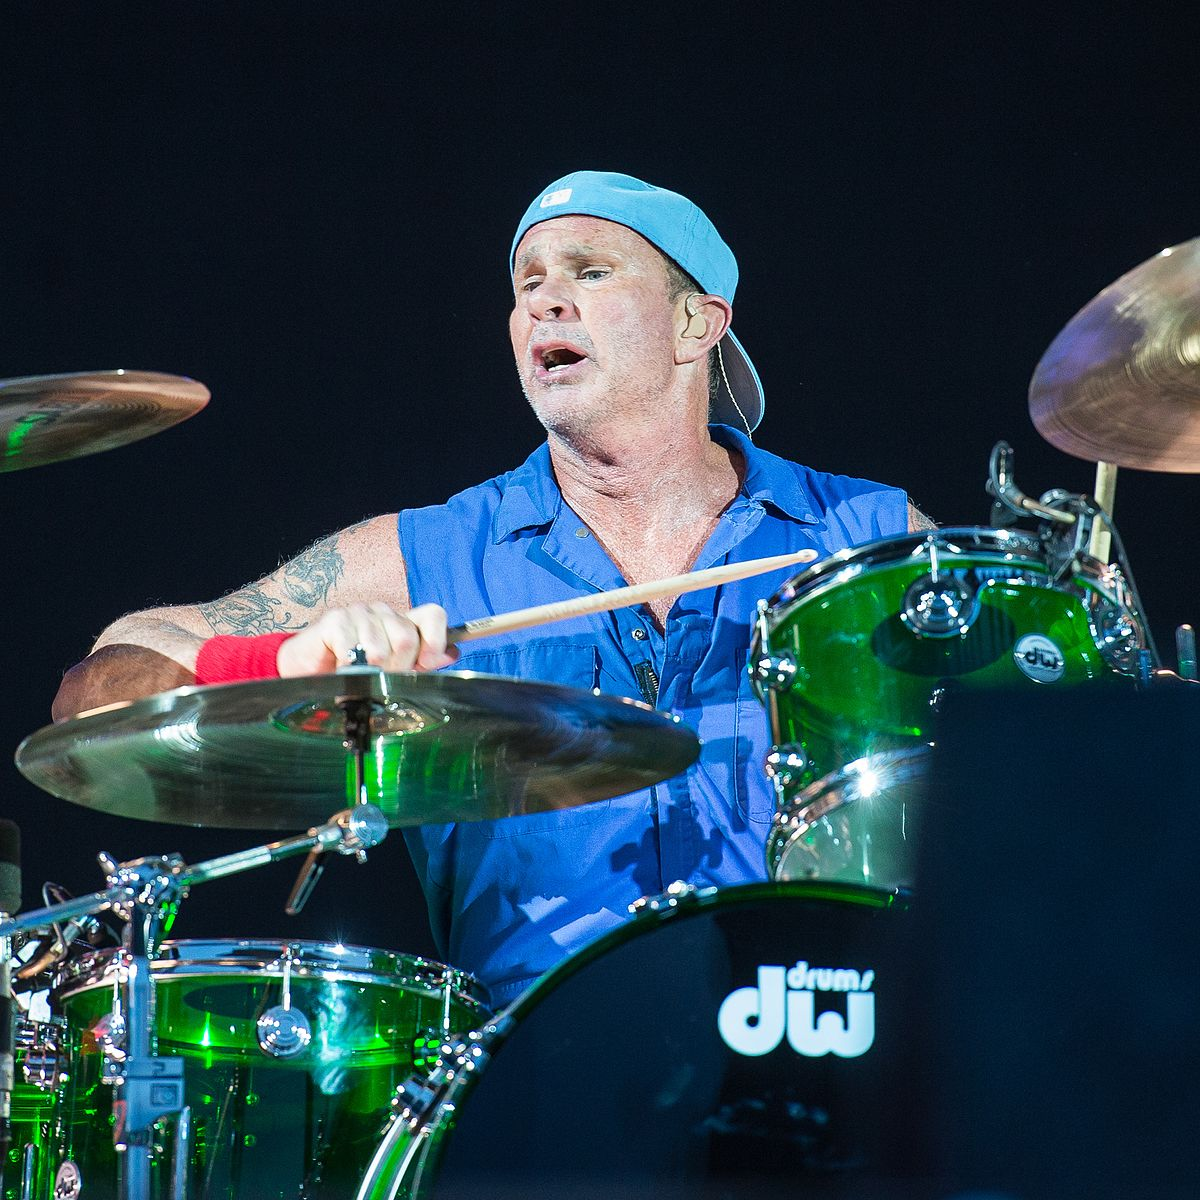 Chad Smith Wikipedia